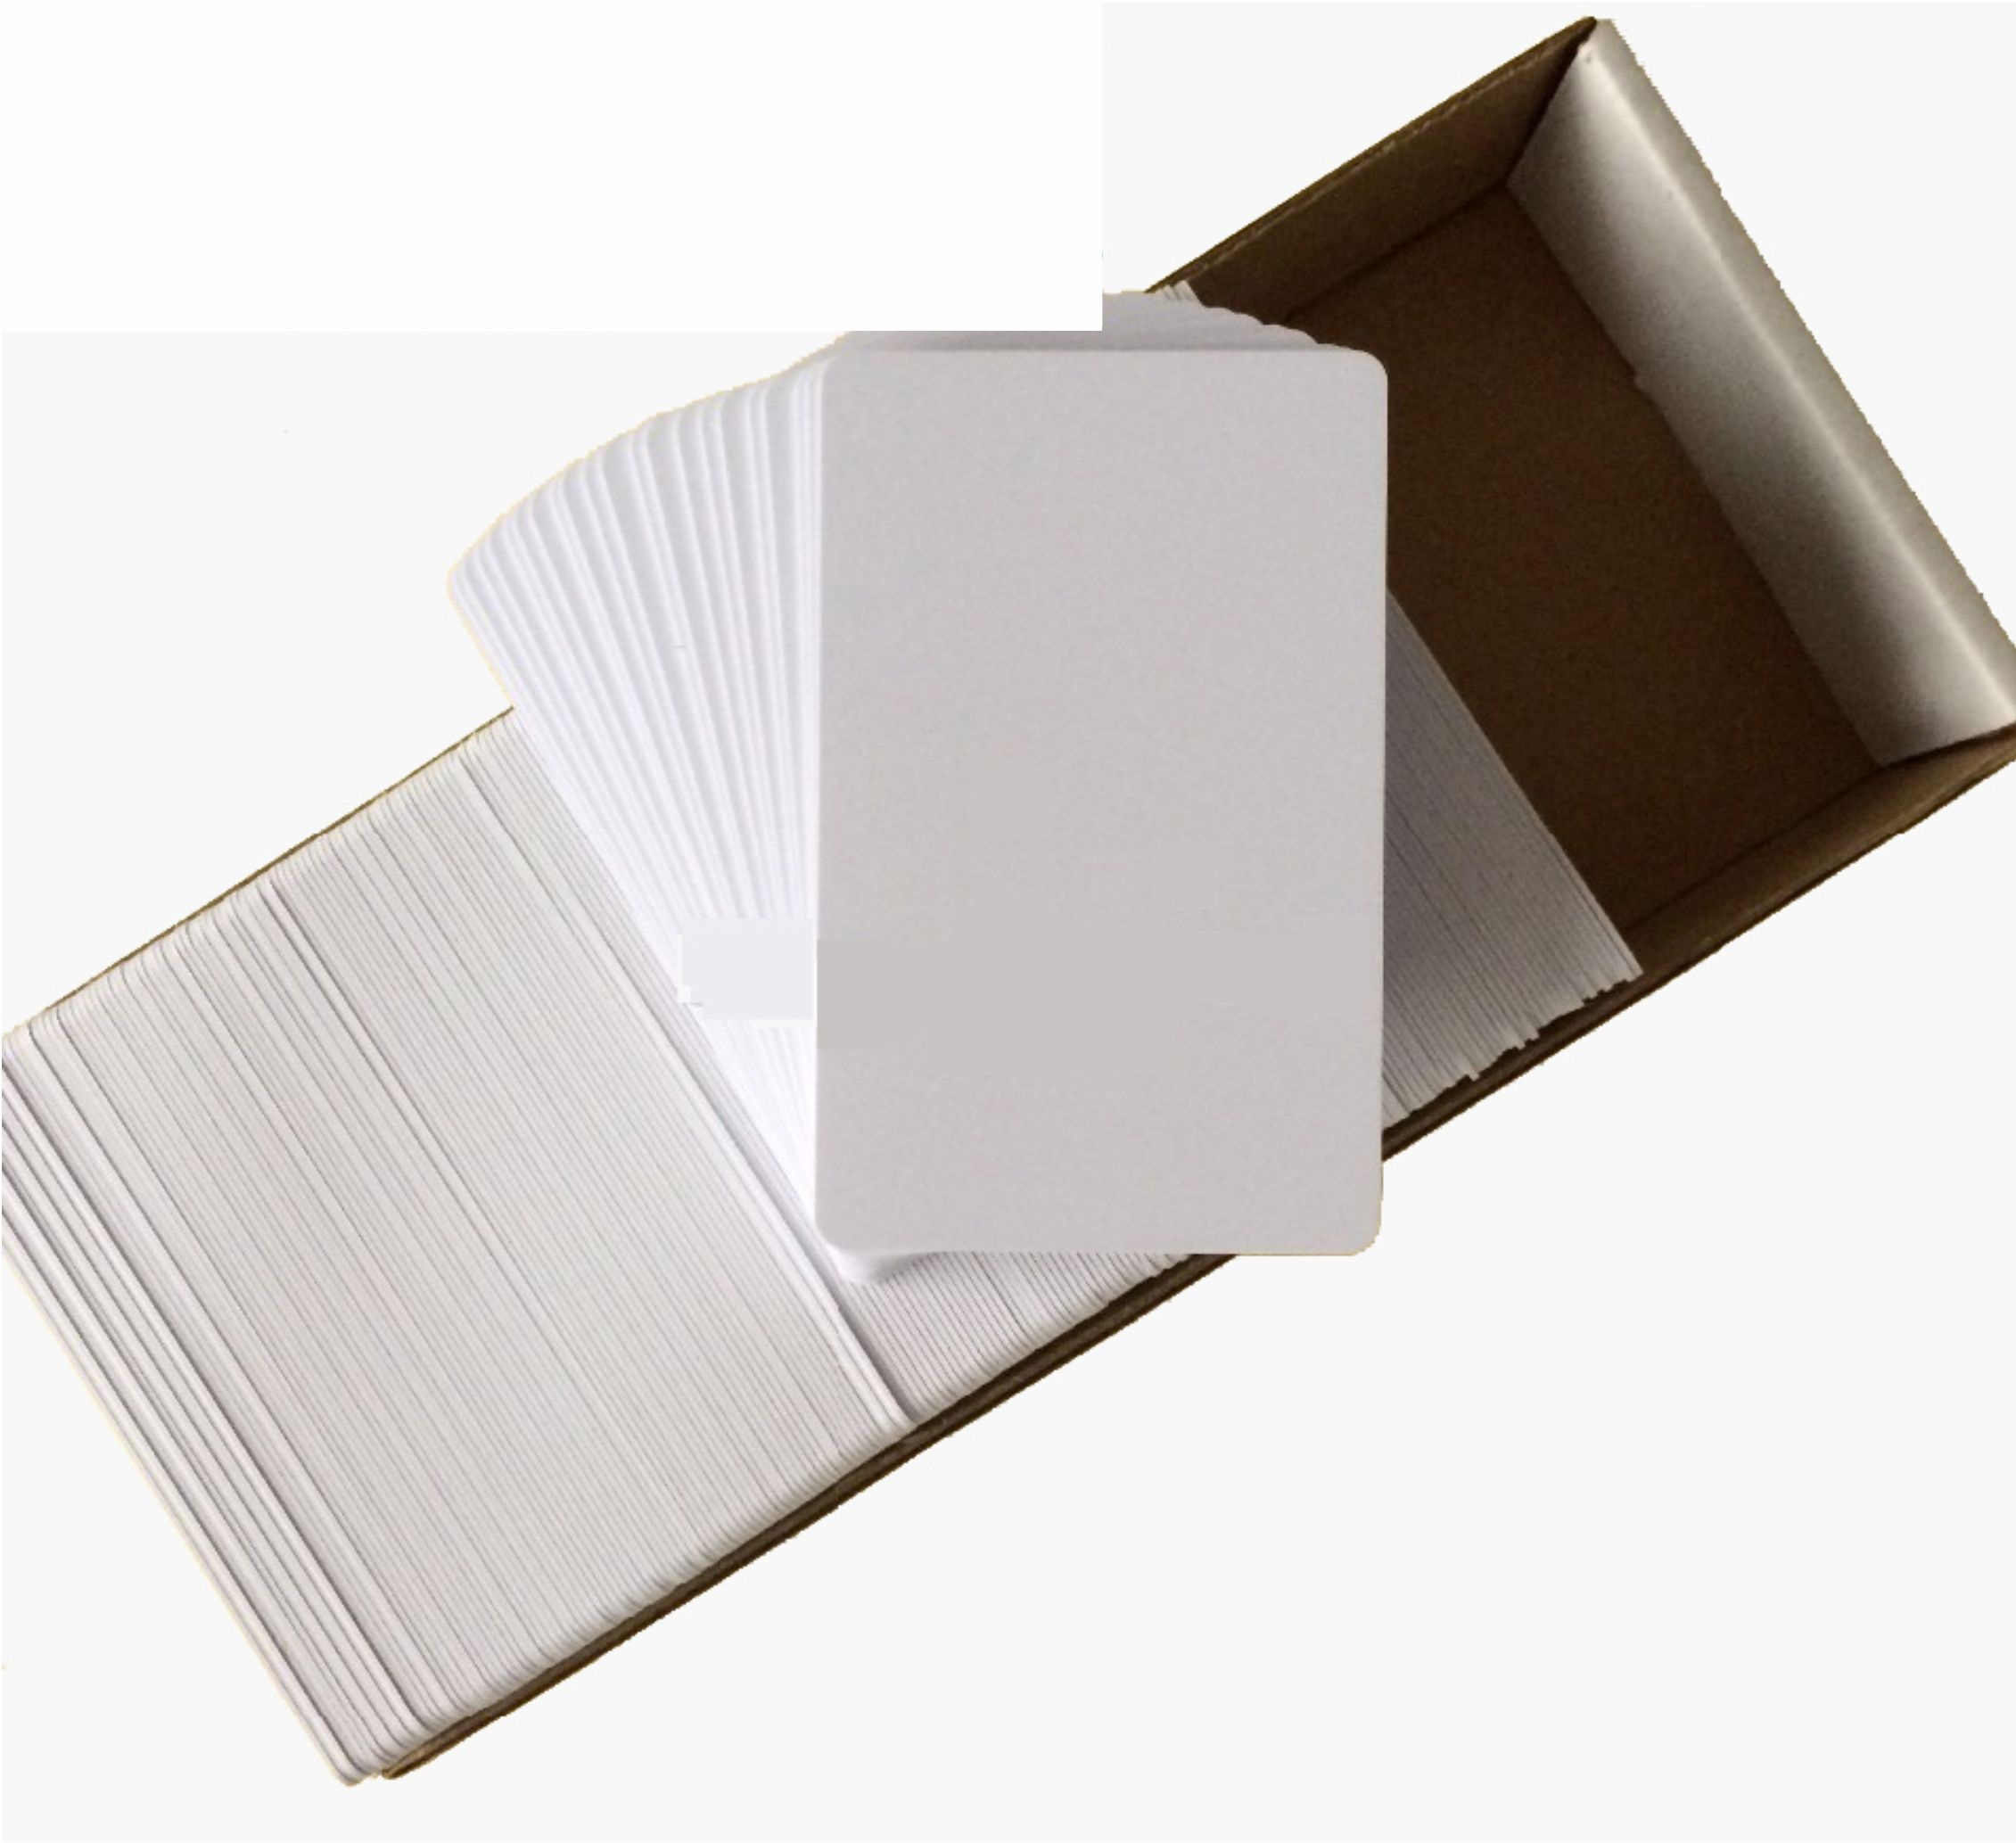 DDS THERMAL PVC CARD FOR ALL THERMAL PRINTER 250 PCS BOX